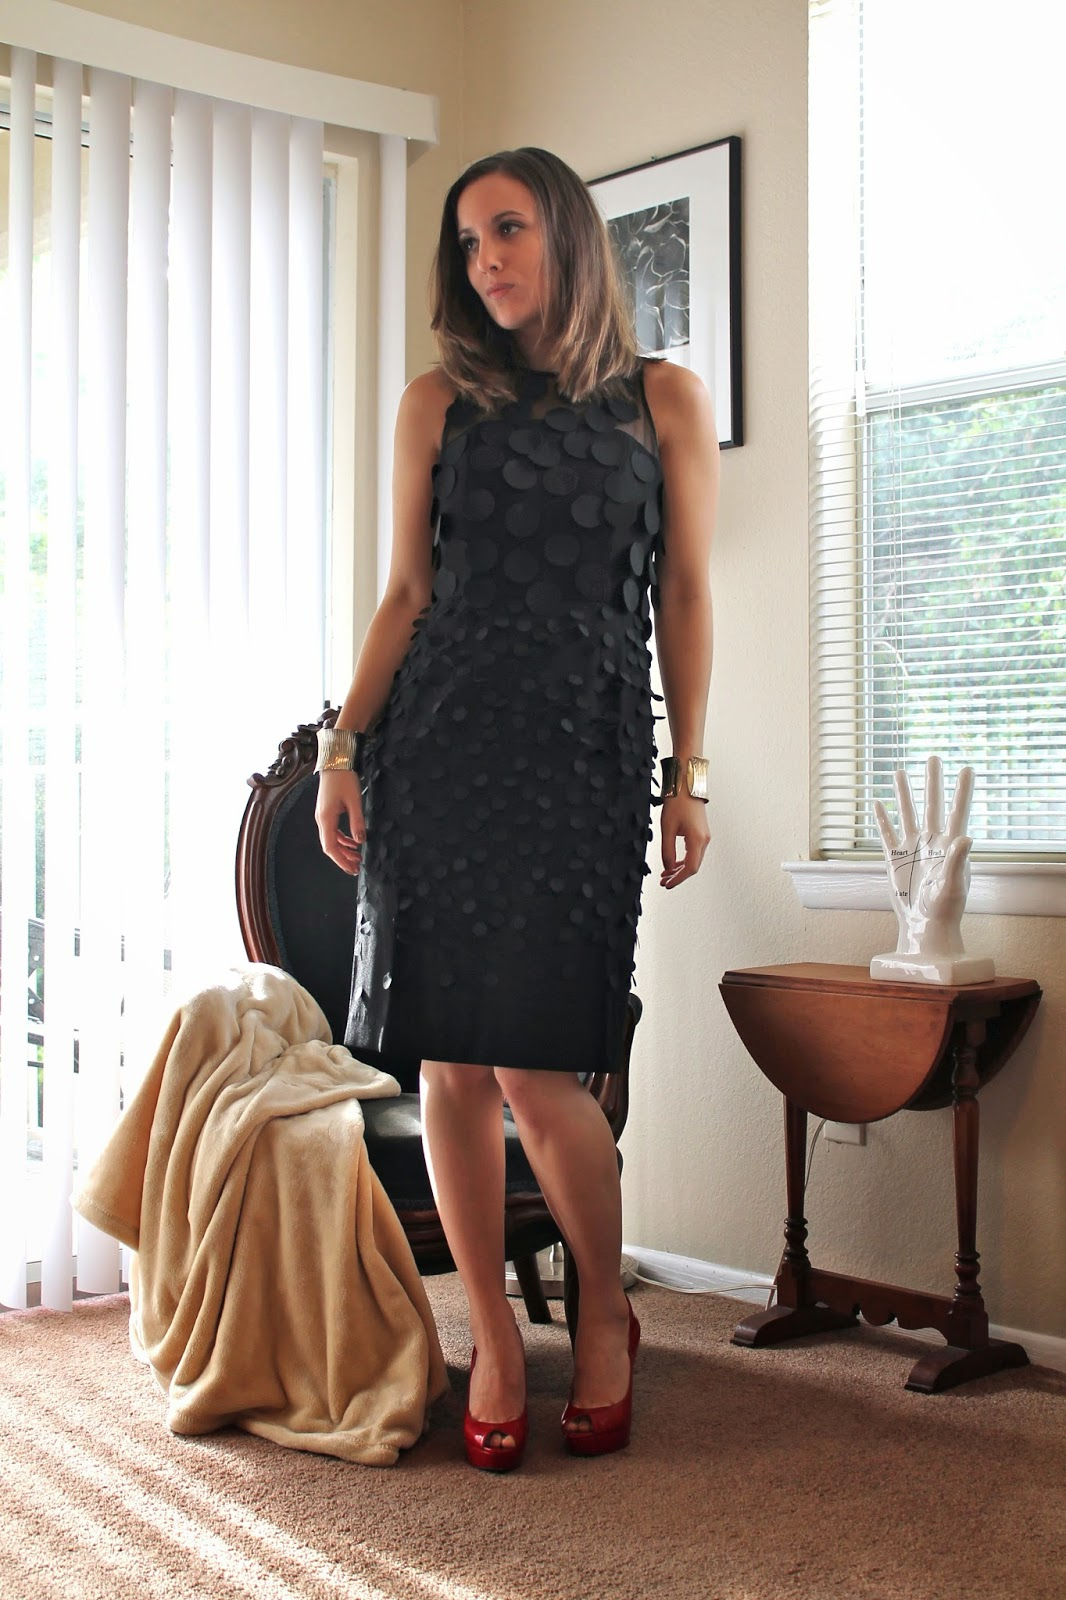 Anthropologie, Jessica Simpson, Forever 21, fashion blog, style blog, lookbook, holiday style, holiday party dress, LBD